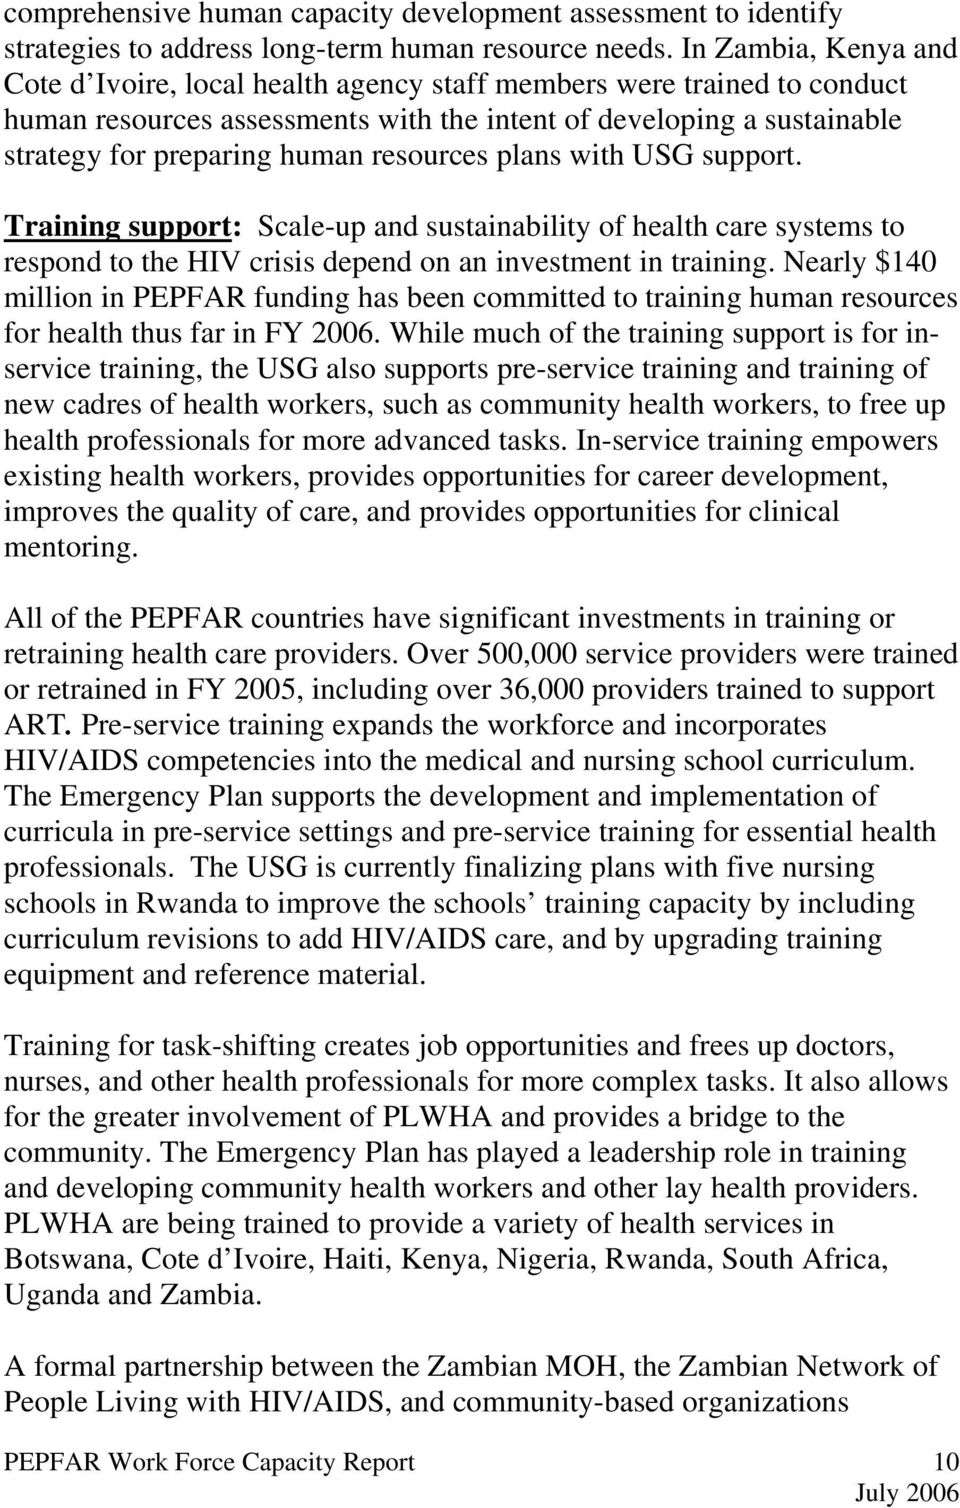 resources plans with USG support. Training support: Scale-up and sustainability of health care systems to respond to the HIV crisis depend on an investment in training.